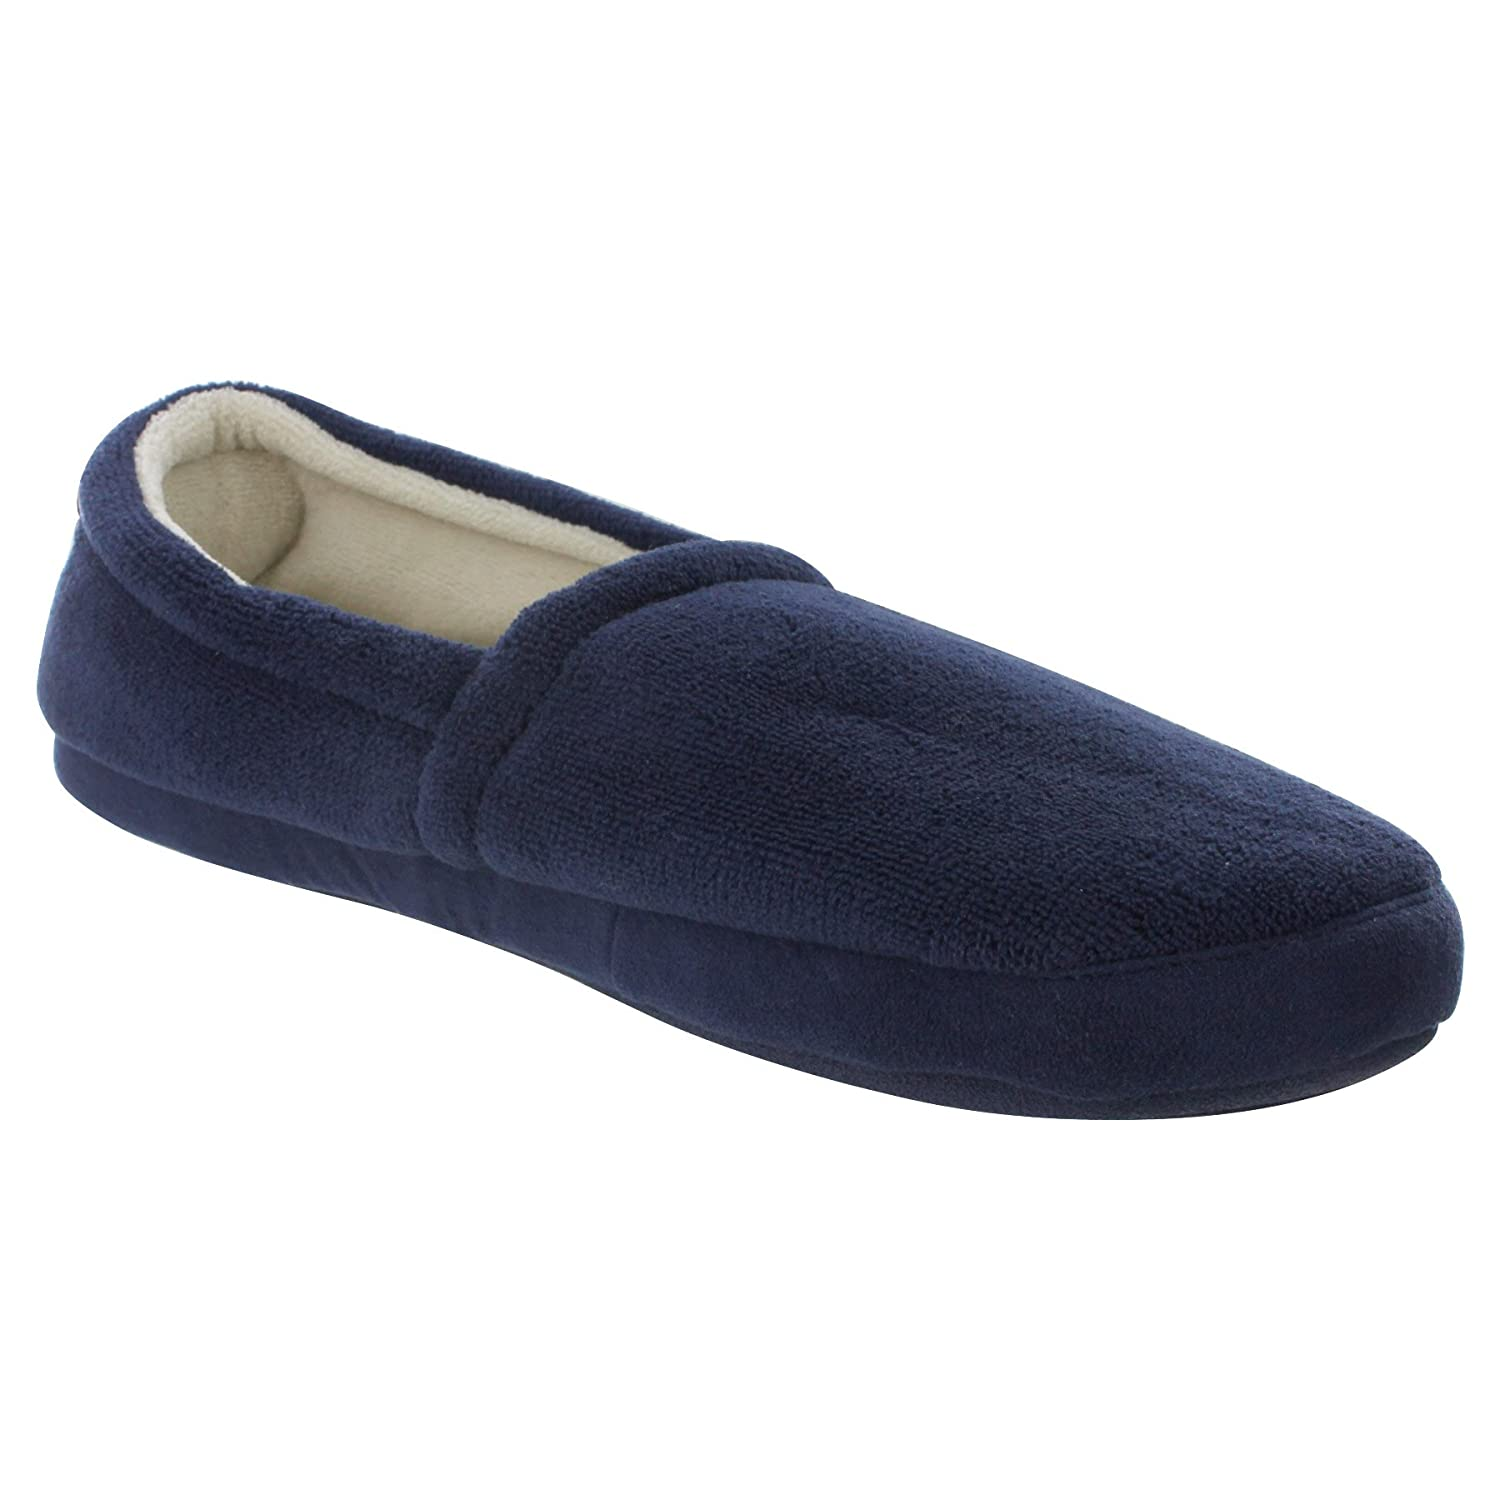 Mens Fleece Lined Slippers rugged compass clip